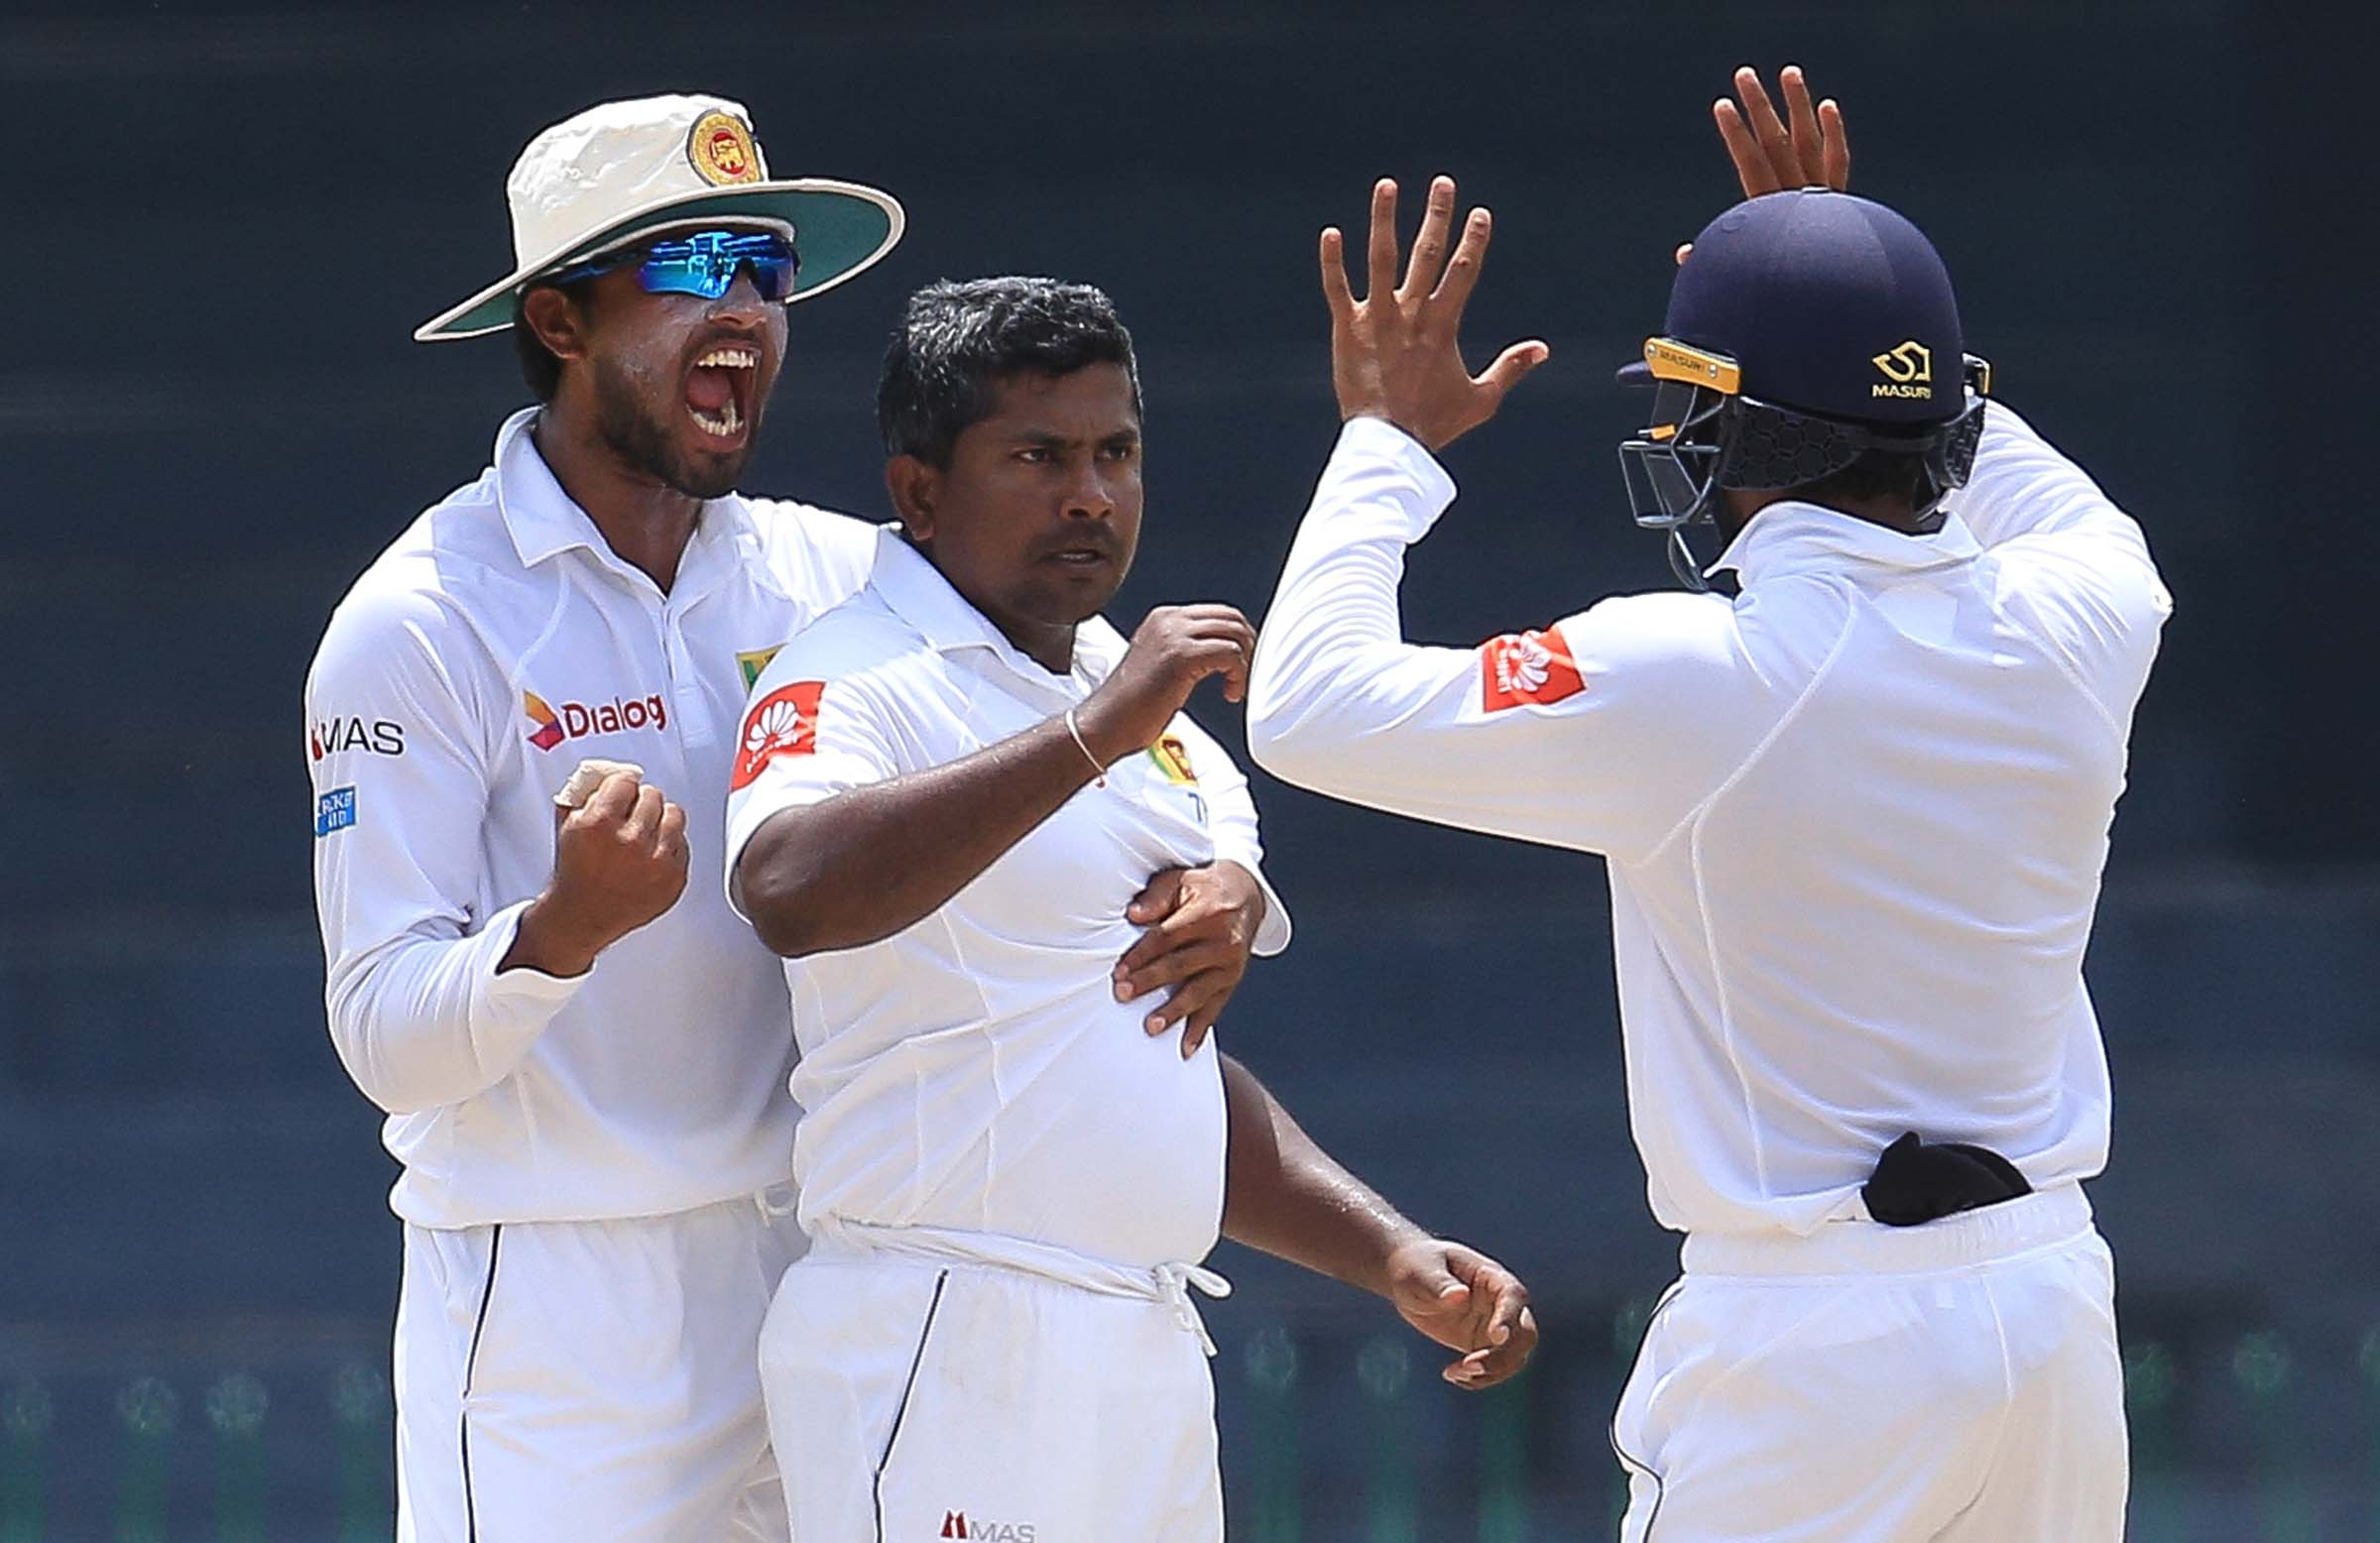 Herath topples Ashwin to become 2nd ranked Test bowler